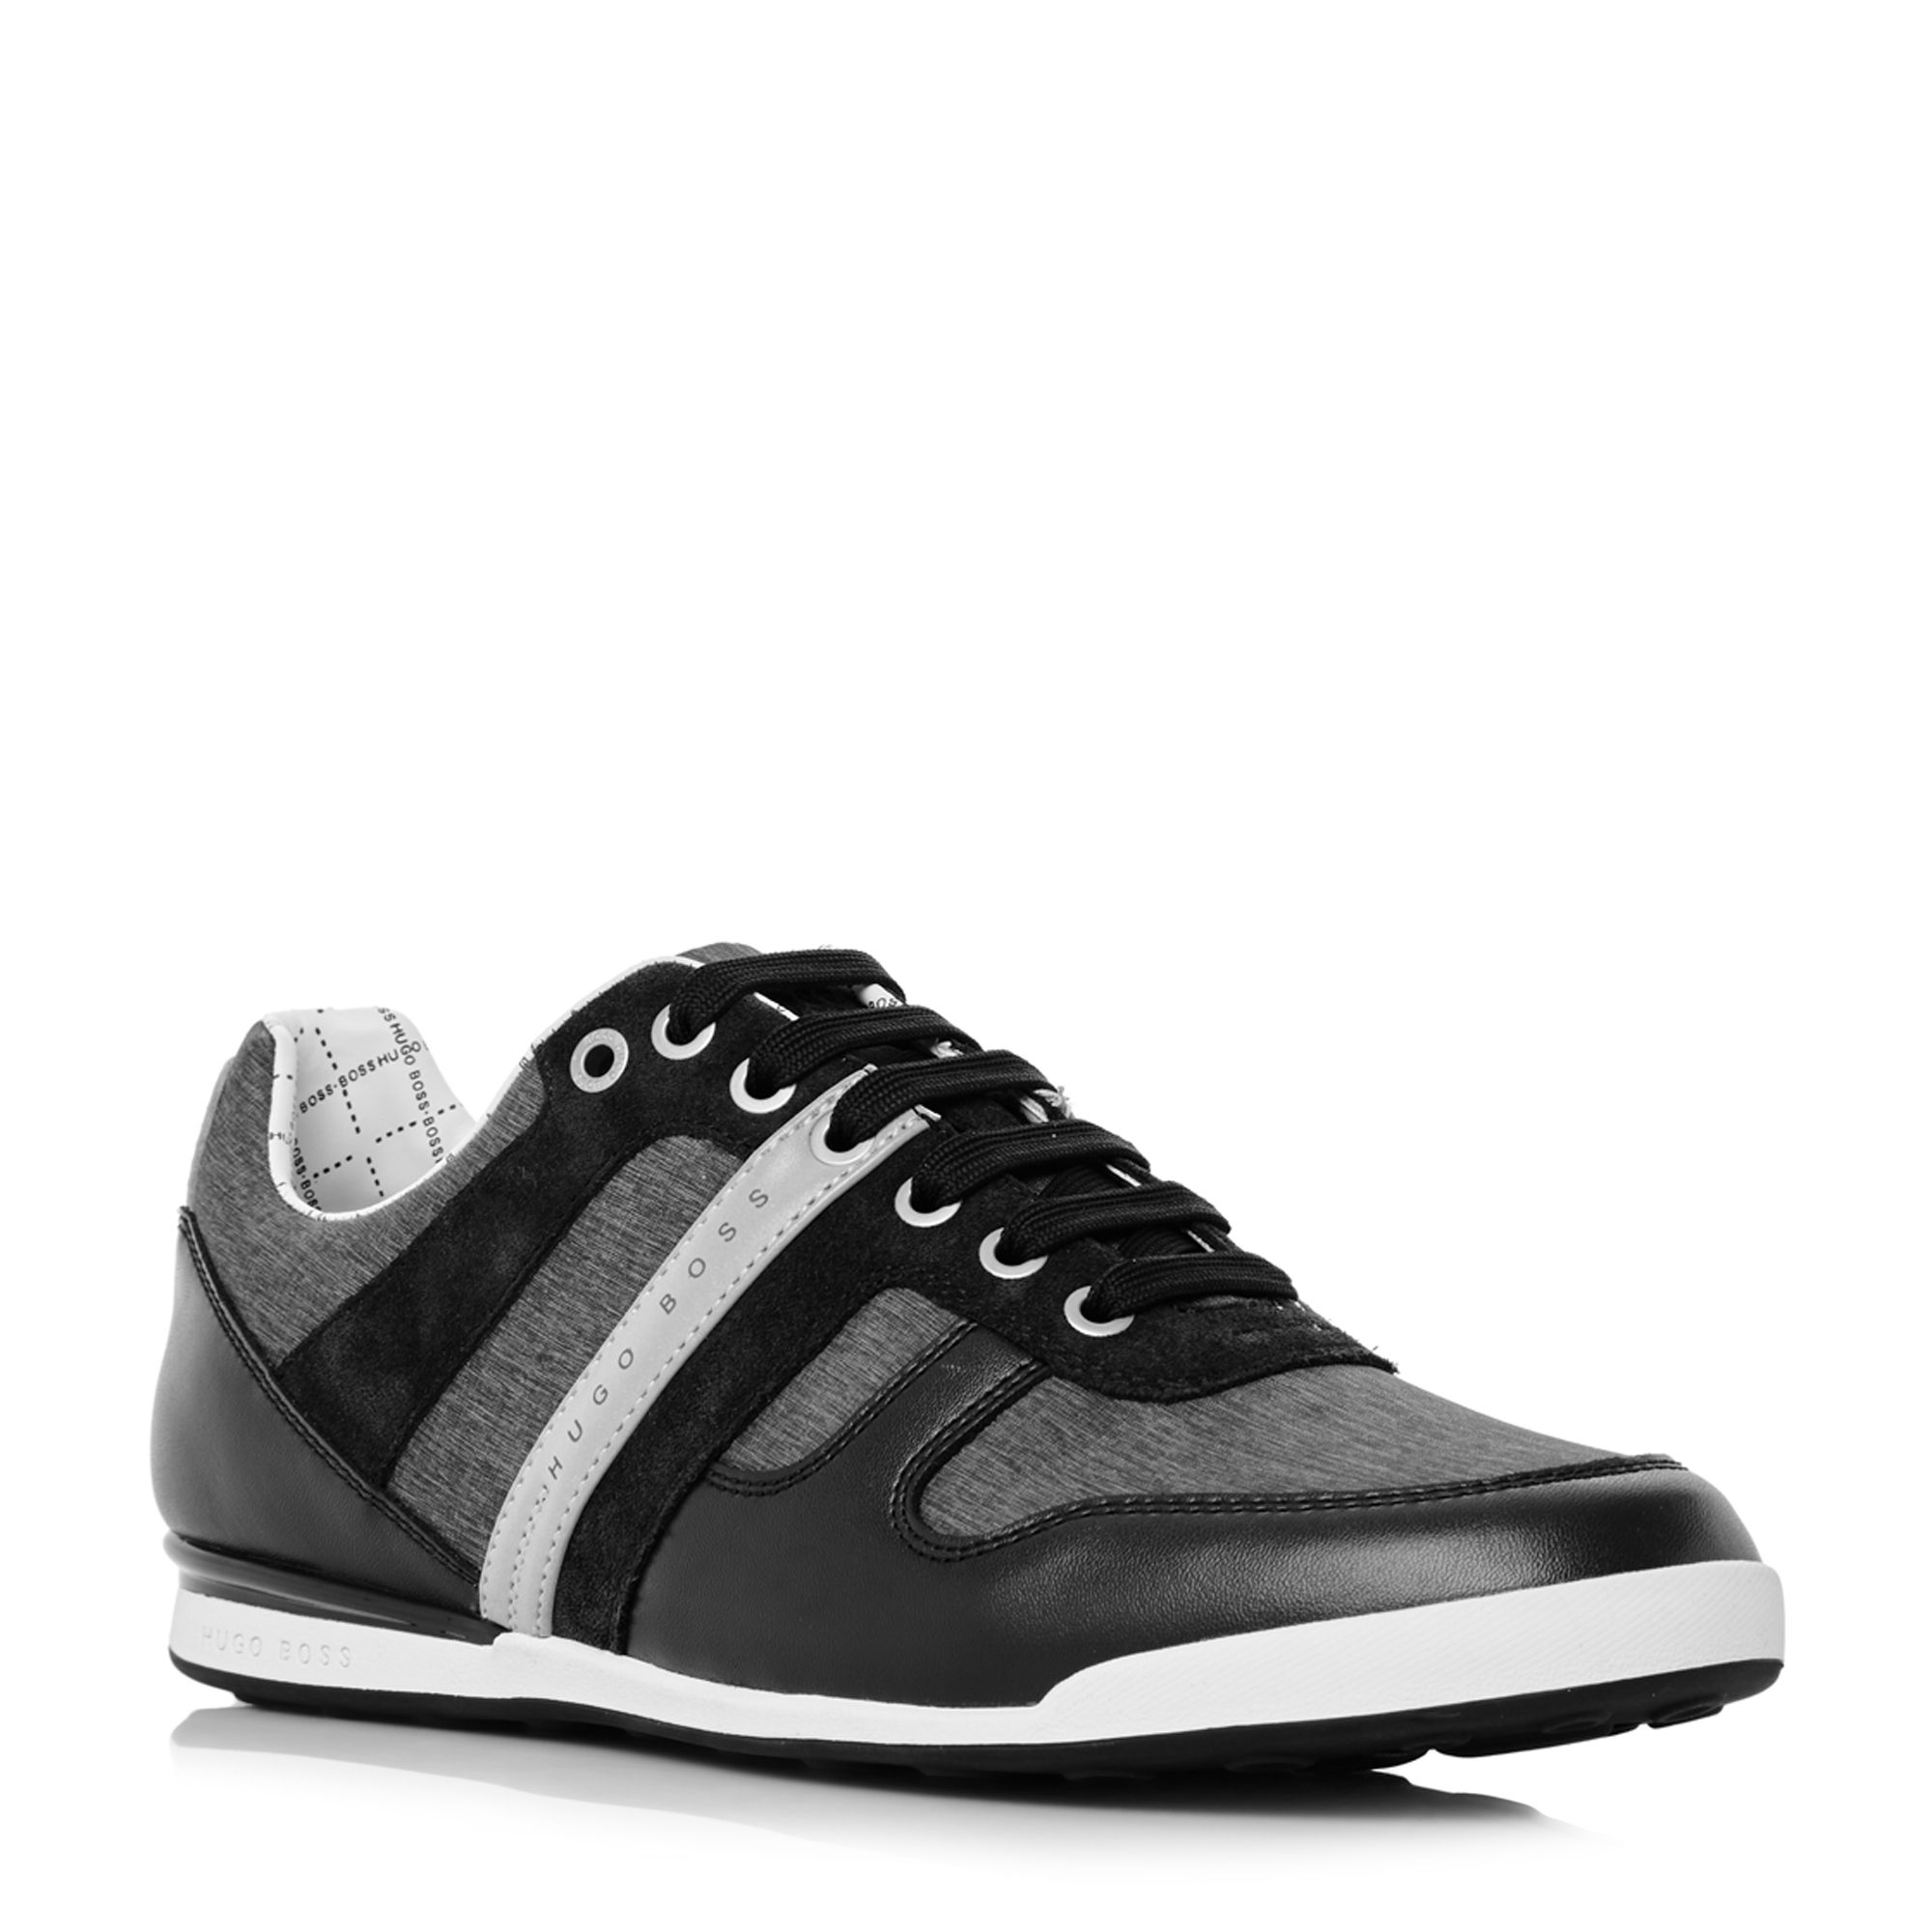 Hugo Boss Arkansas low chambray leather trainers Black